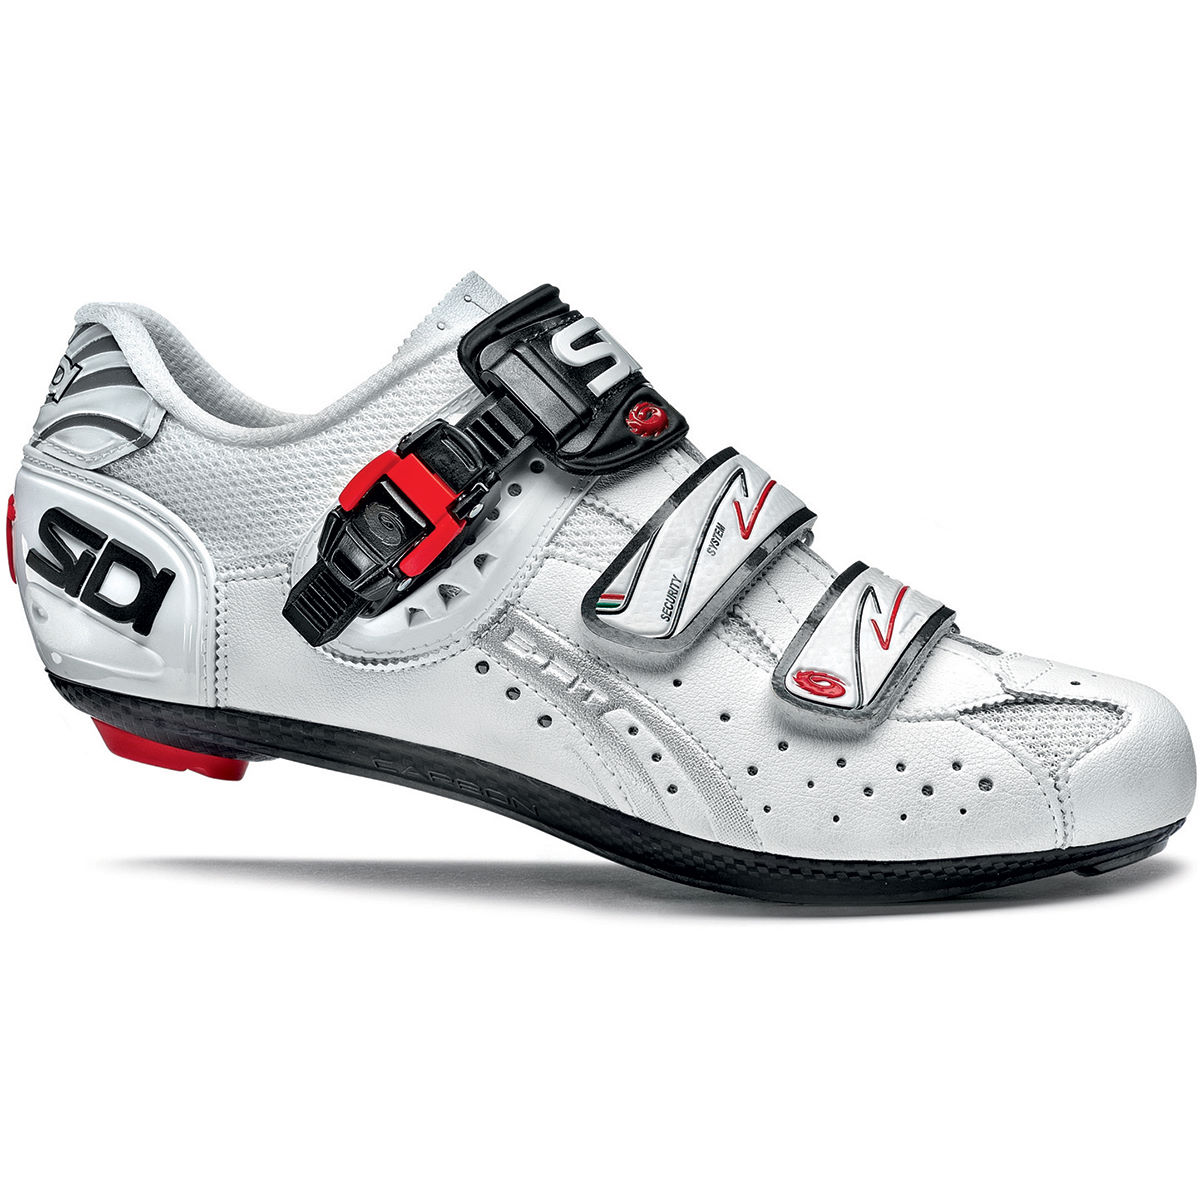 Chaussures de route Sidi Genius 5-Fit Carbone Mega (2015) - EU 42